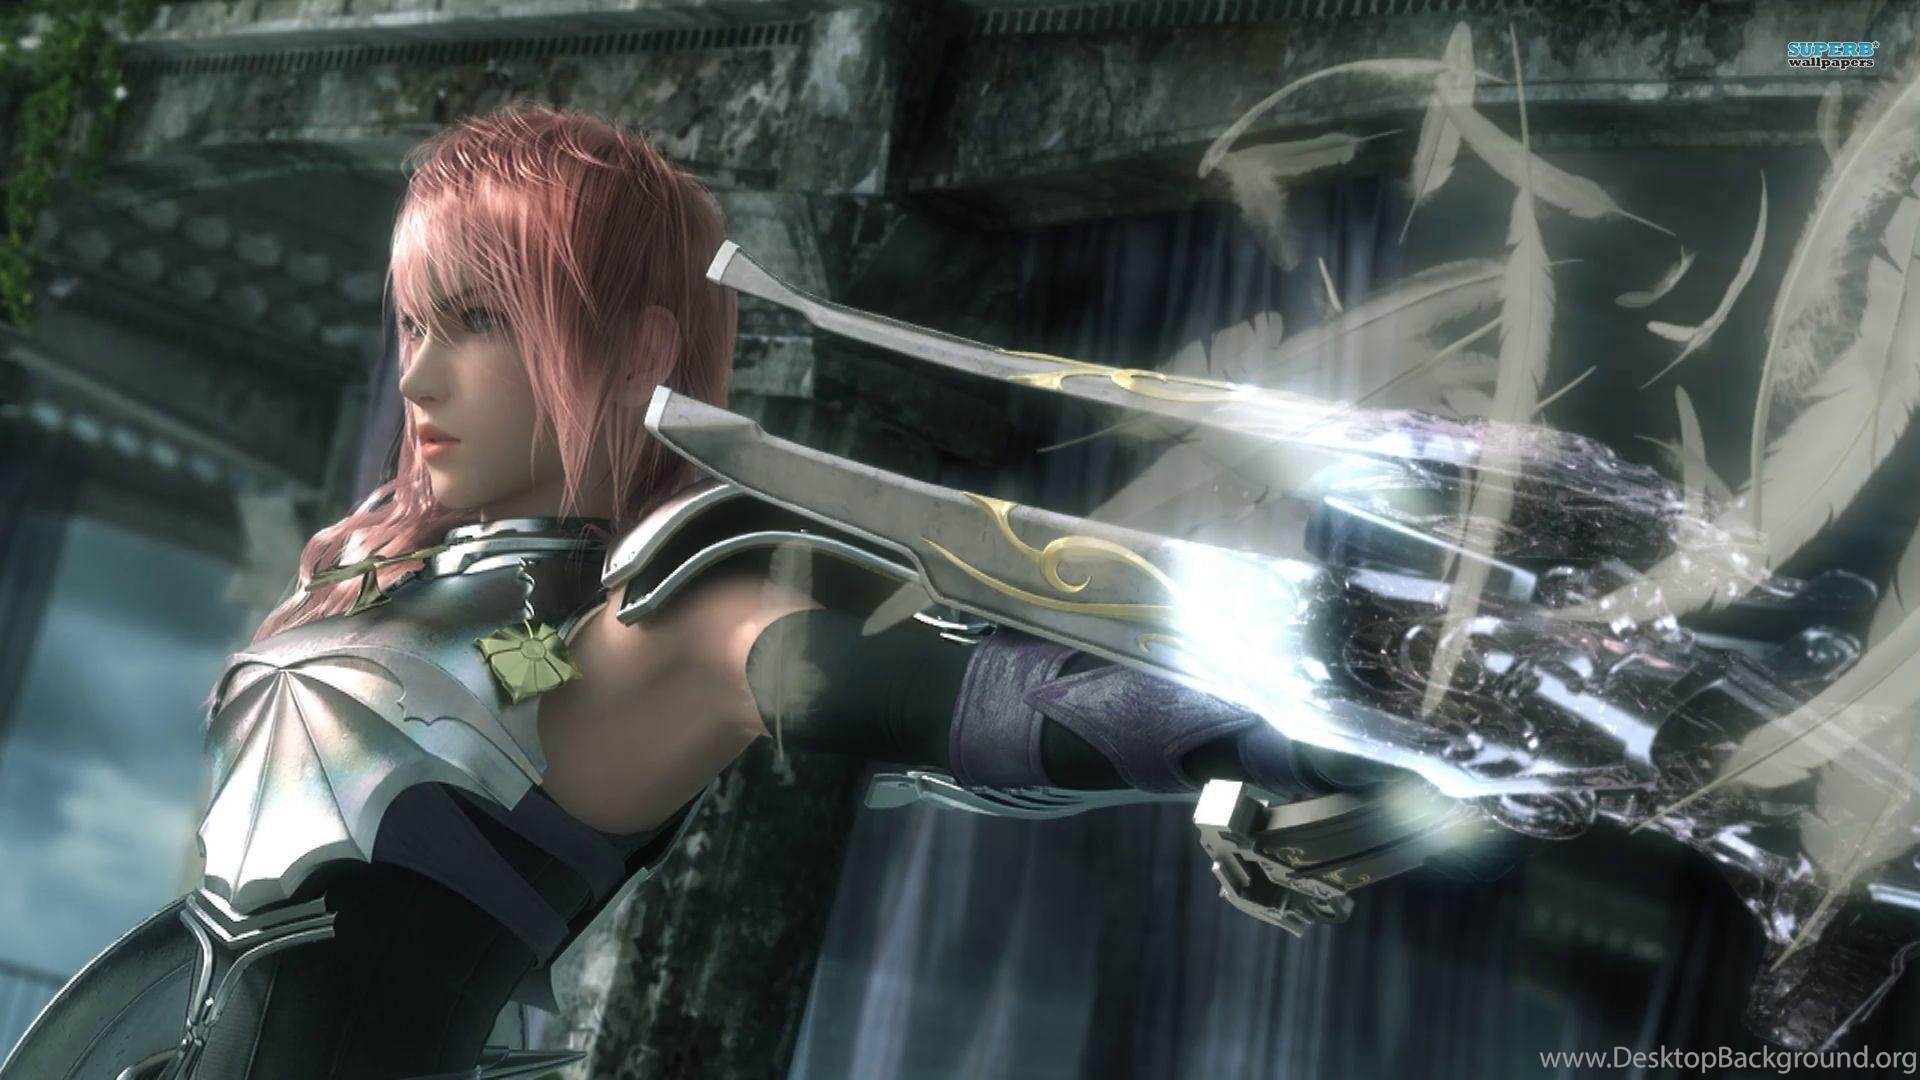 ffxiii 2 lightning wallpaper ( desktop background